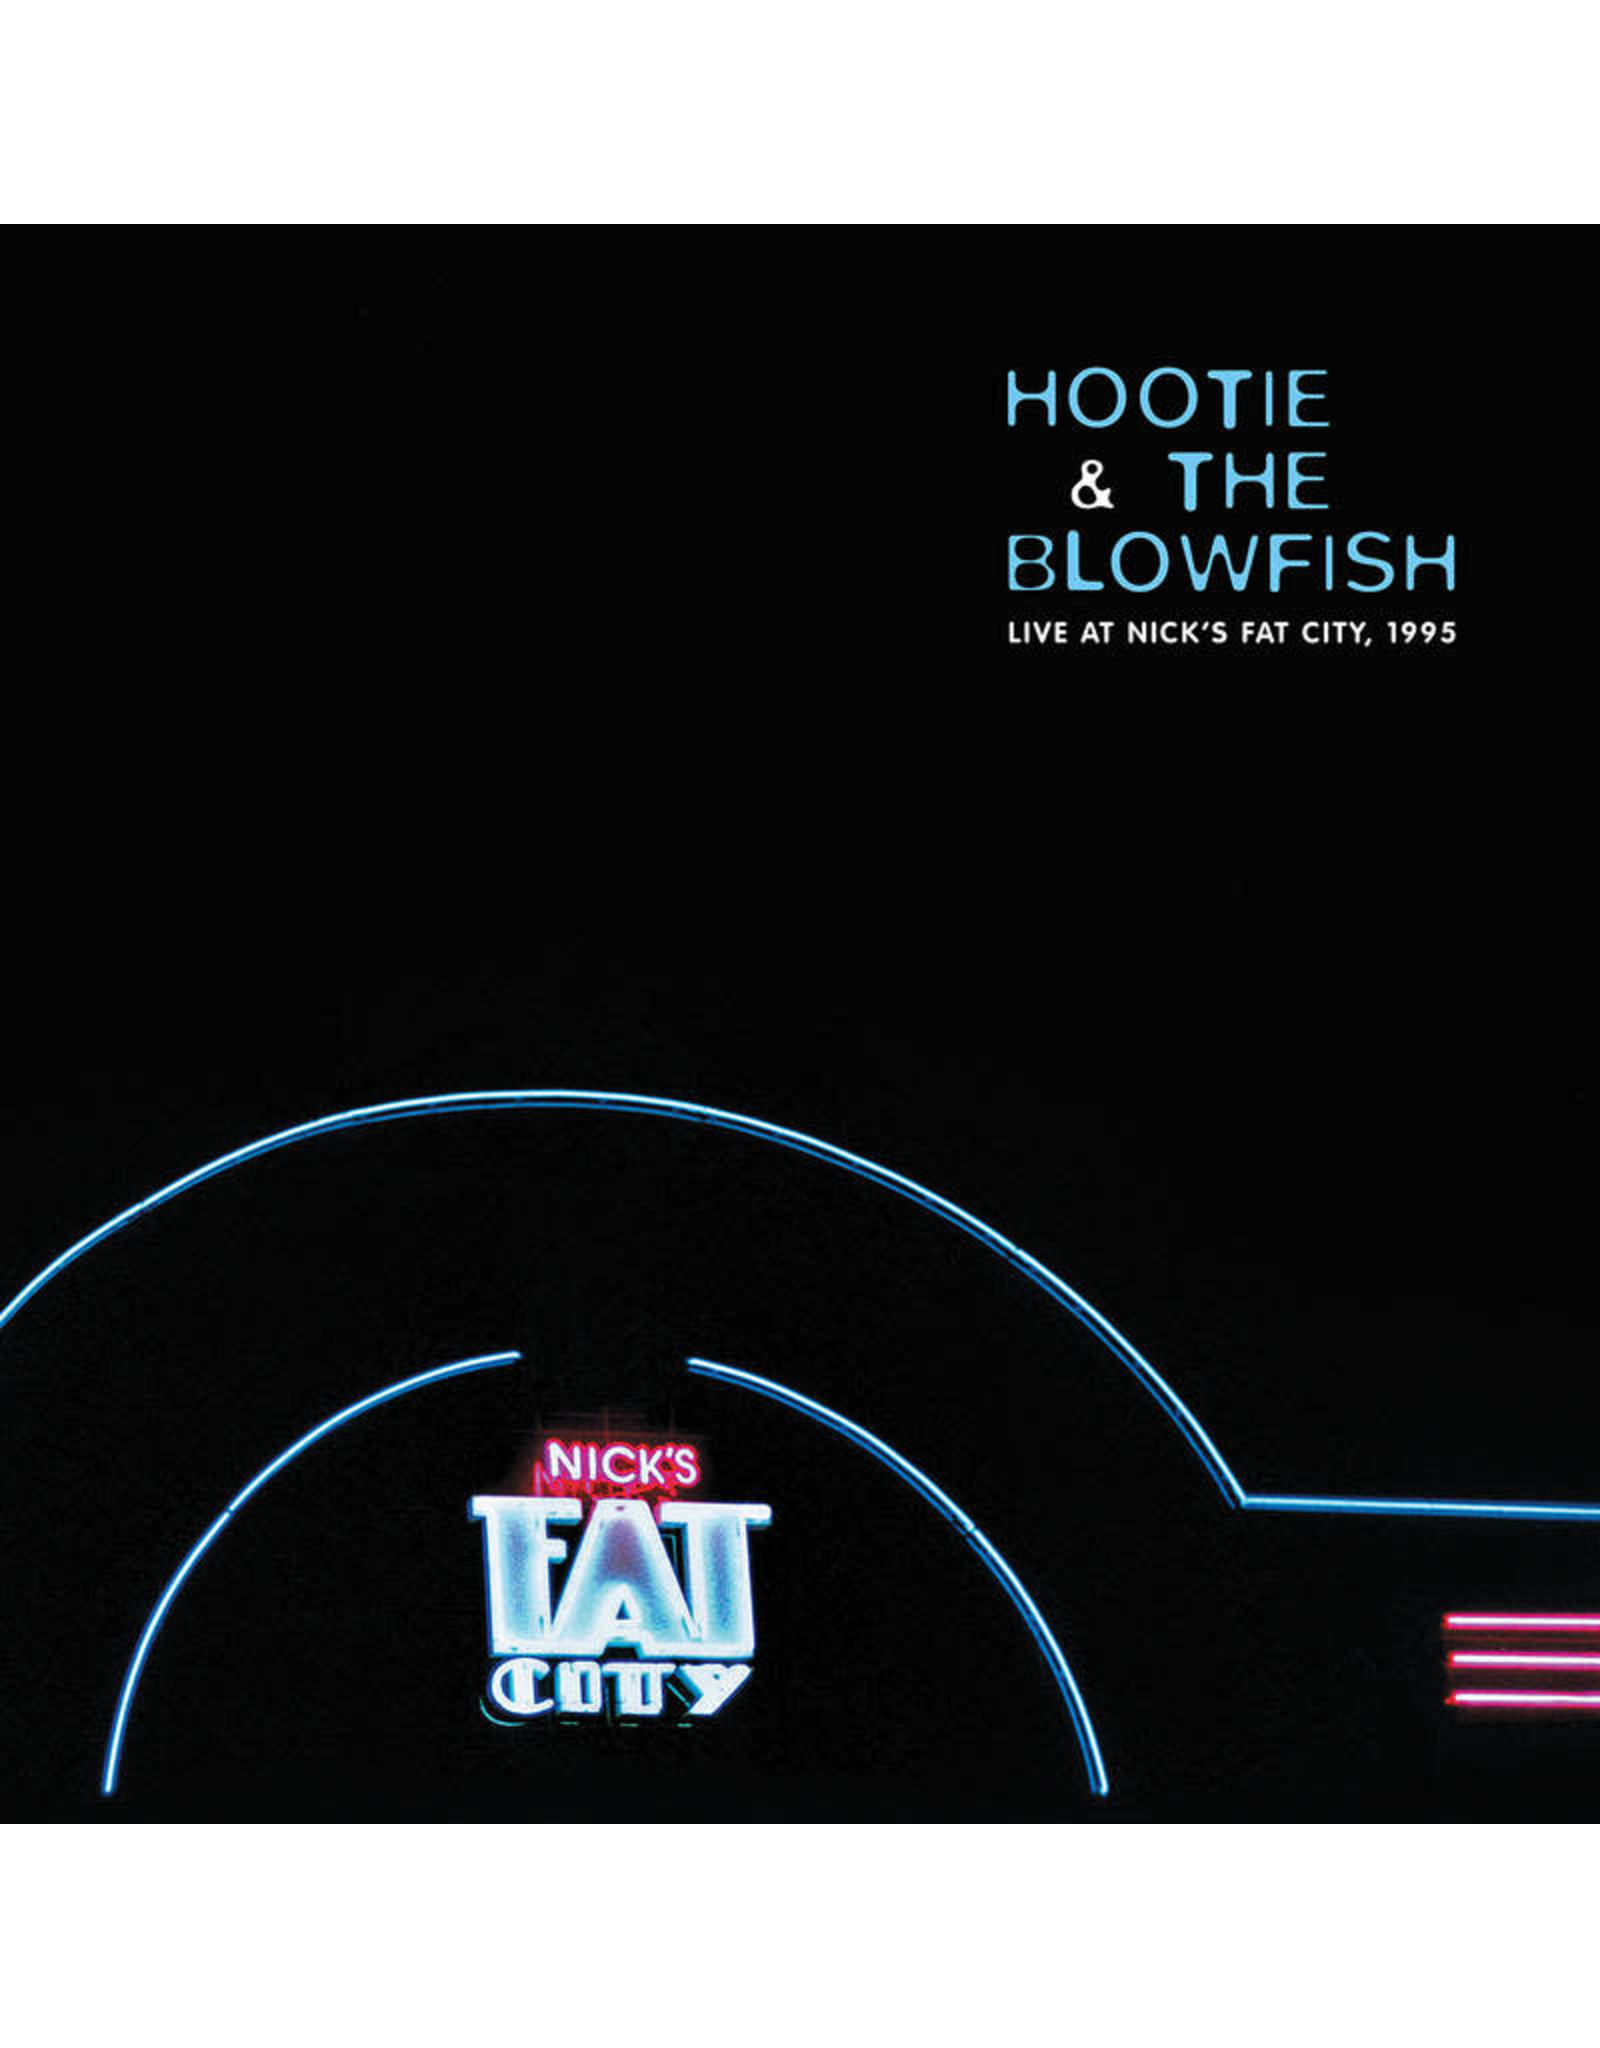 Hootie & The Blowfish - Live At Nick's Fat City, 1995 (Record Store Day)